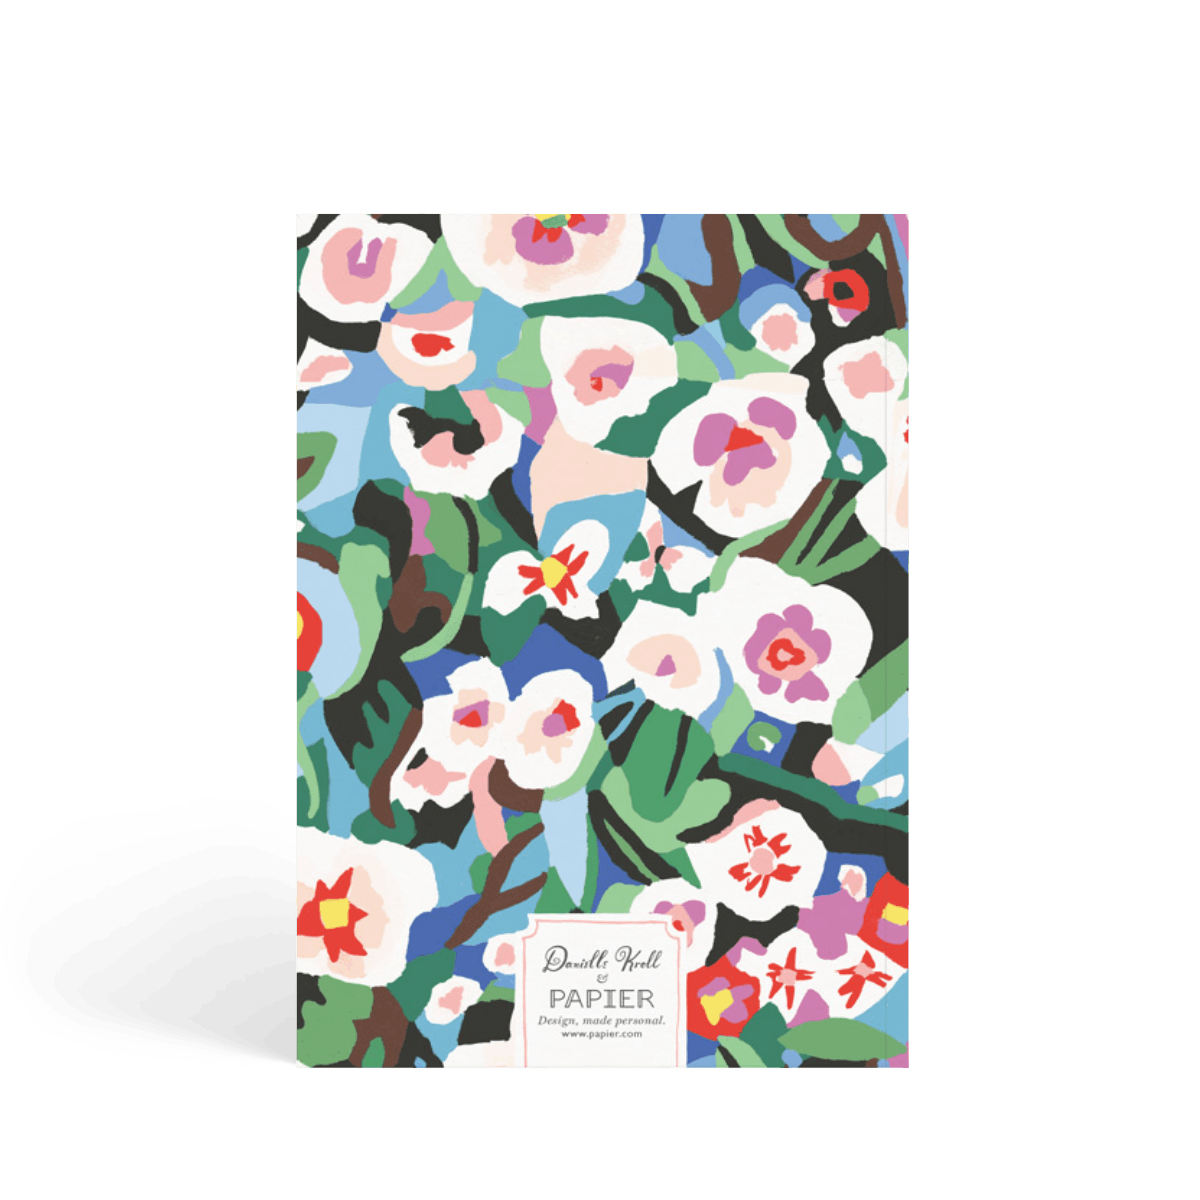 Https%3a%2f%2fwww.papier.com%2fproduct image%2f54061%2f5%2fabstract flowers 13005 back 1562232555.png?ixlib=rb 1.1